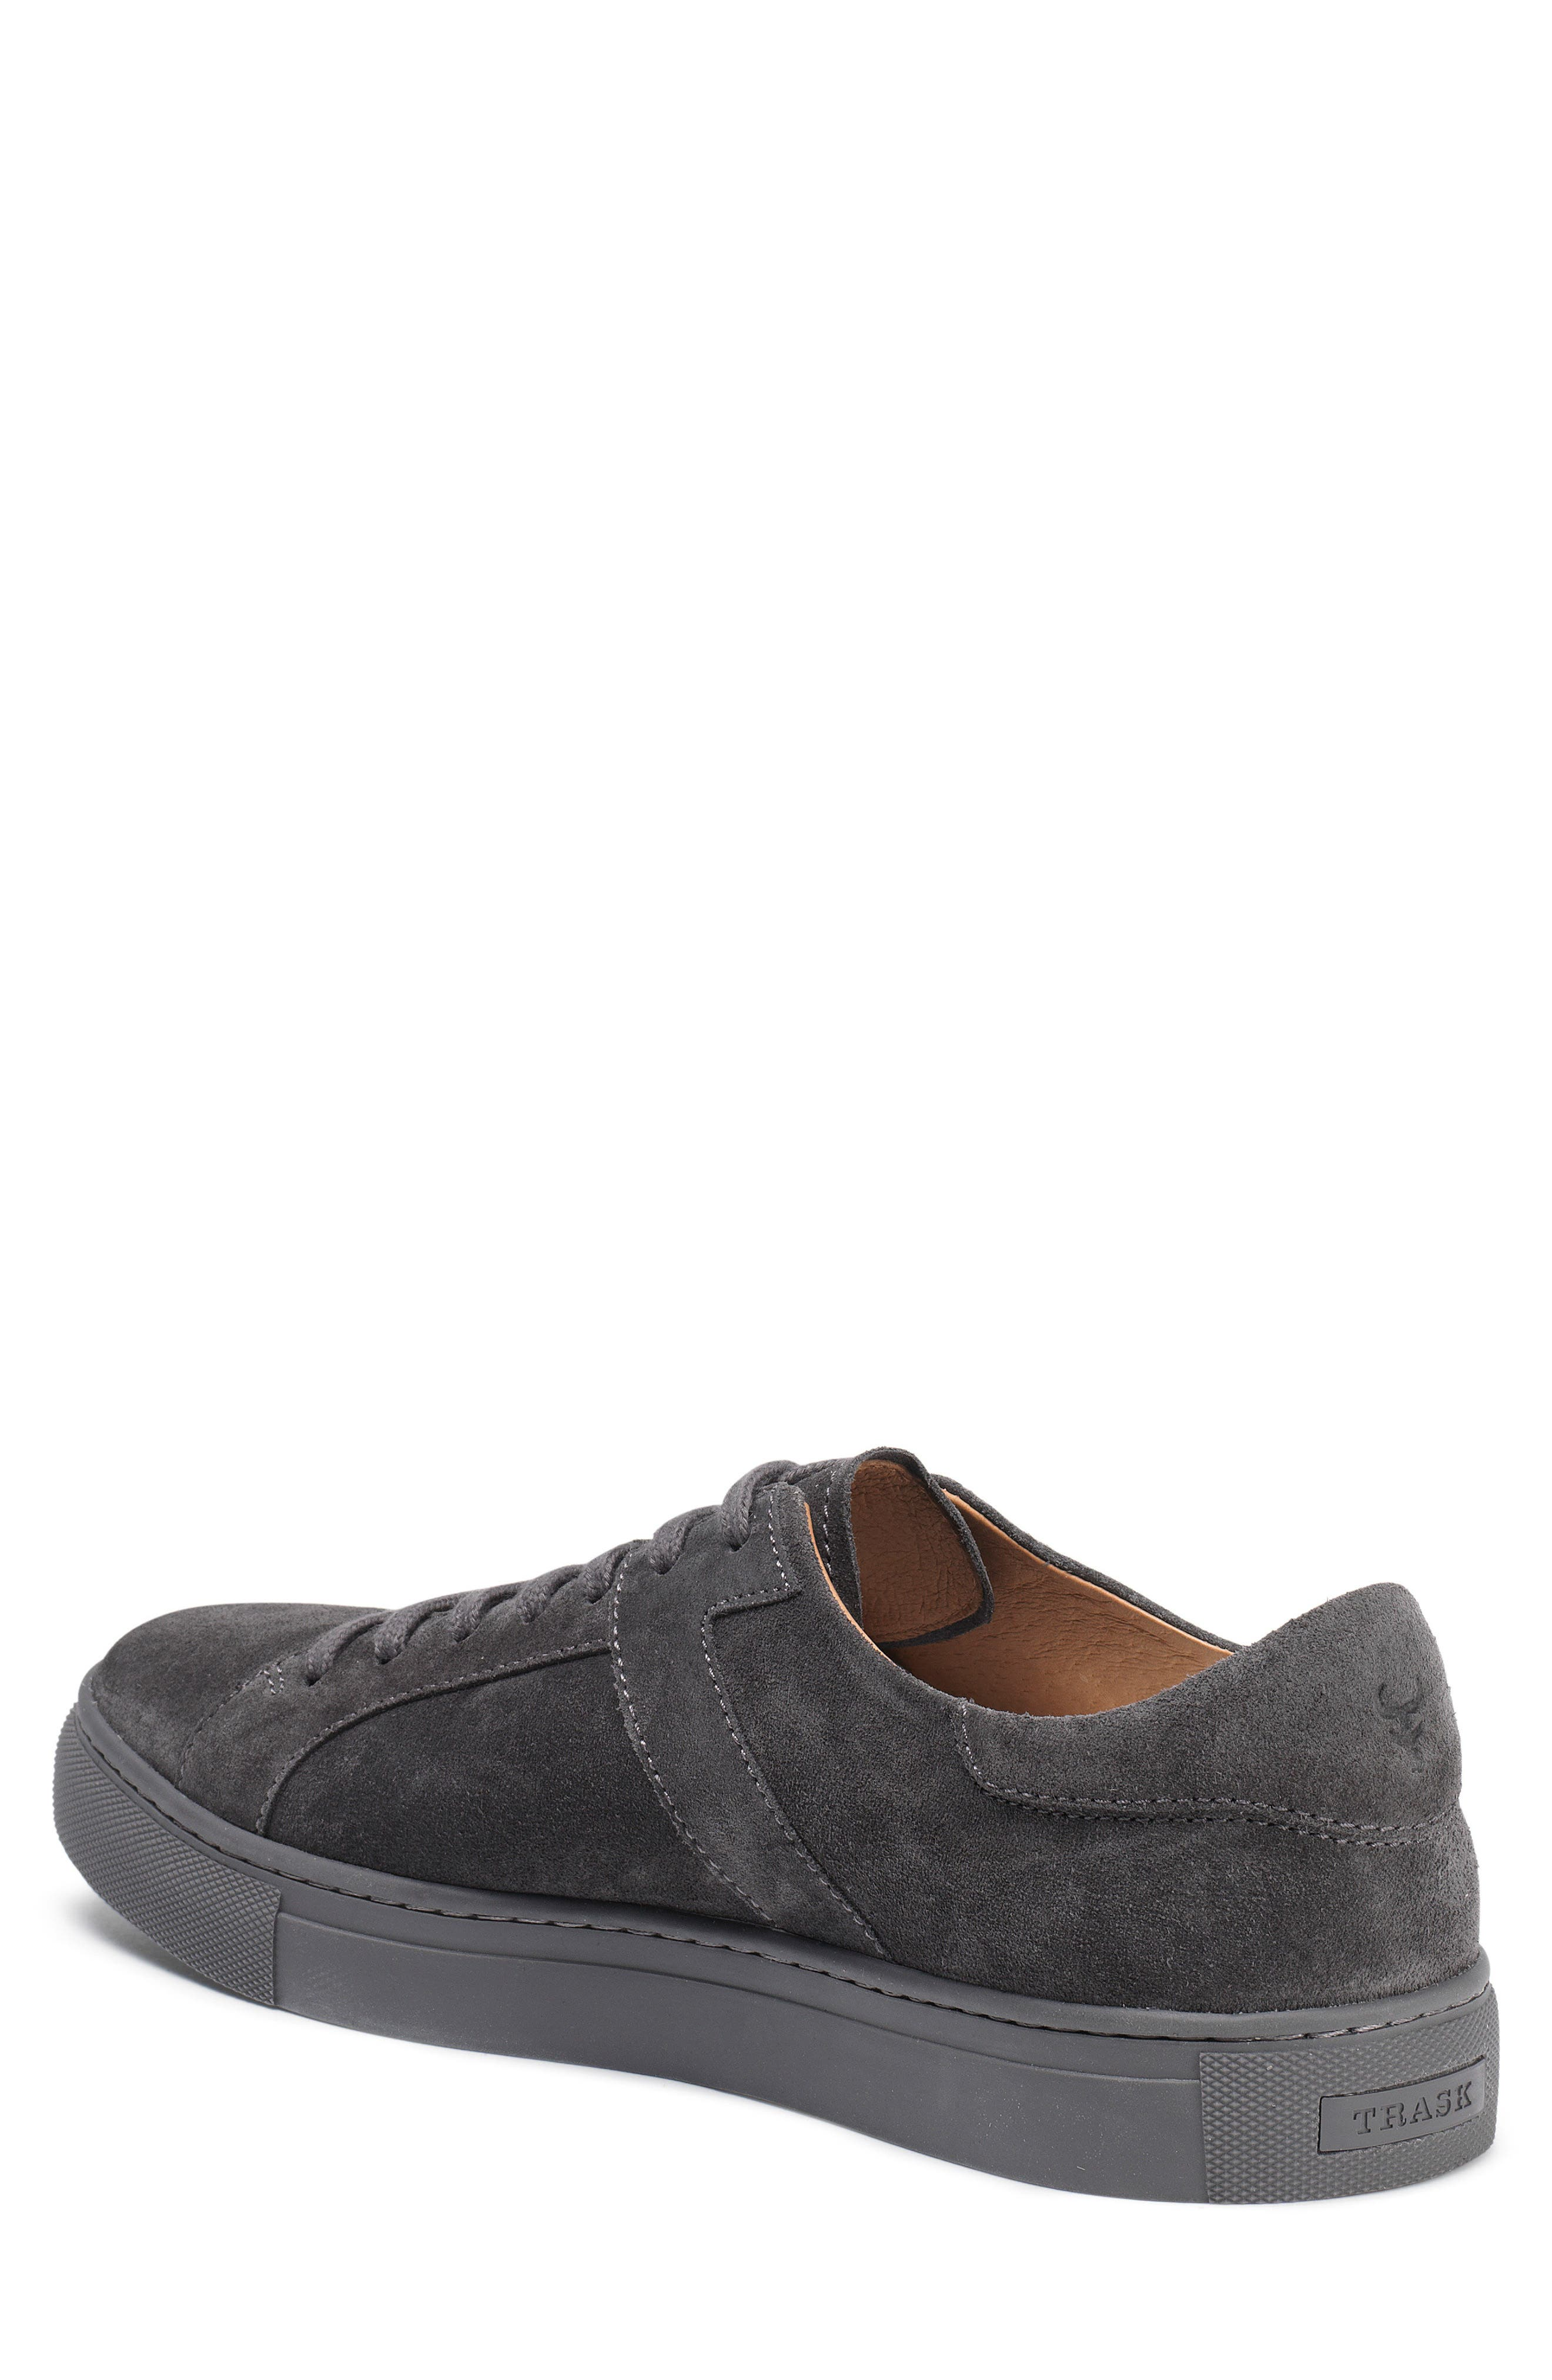 Aaron Sneaker,                             Alternate thumbnail 2, color,                             GRAY SUEDE